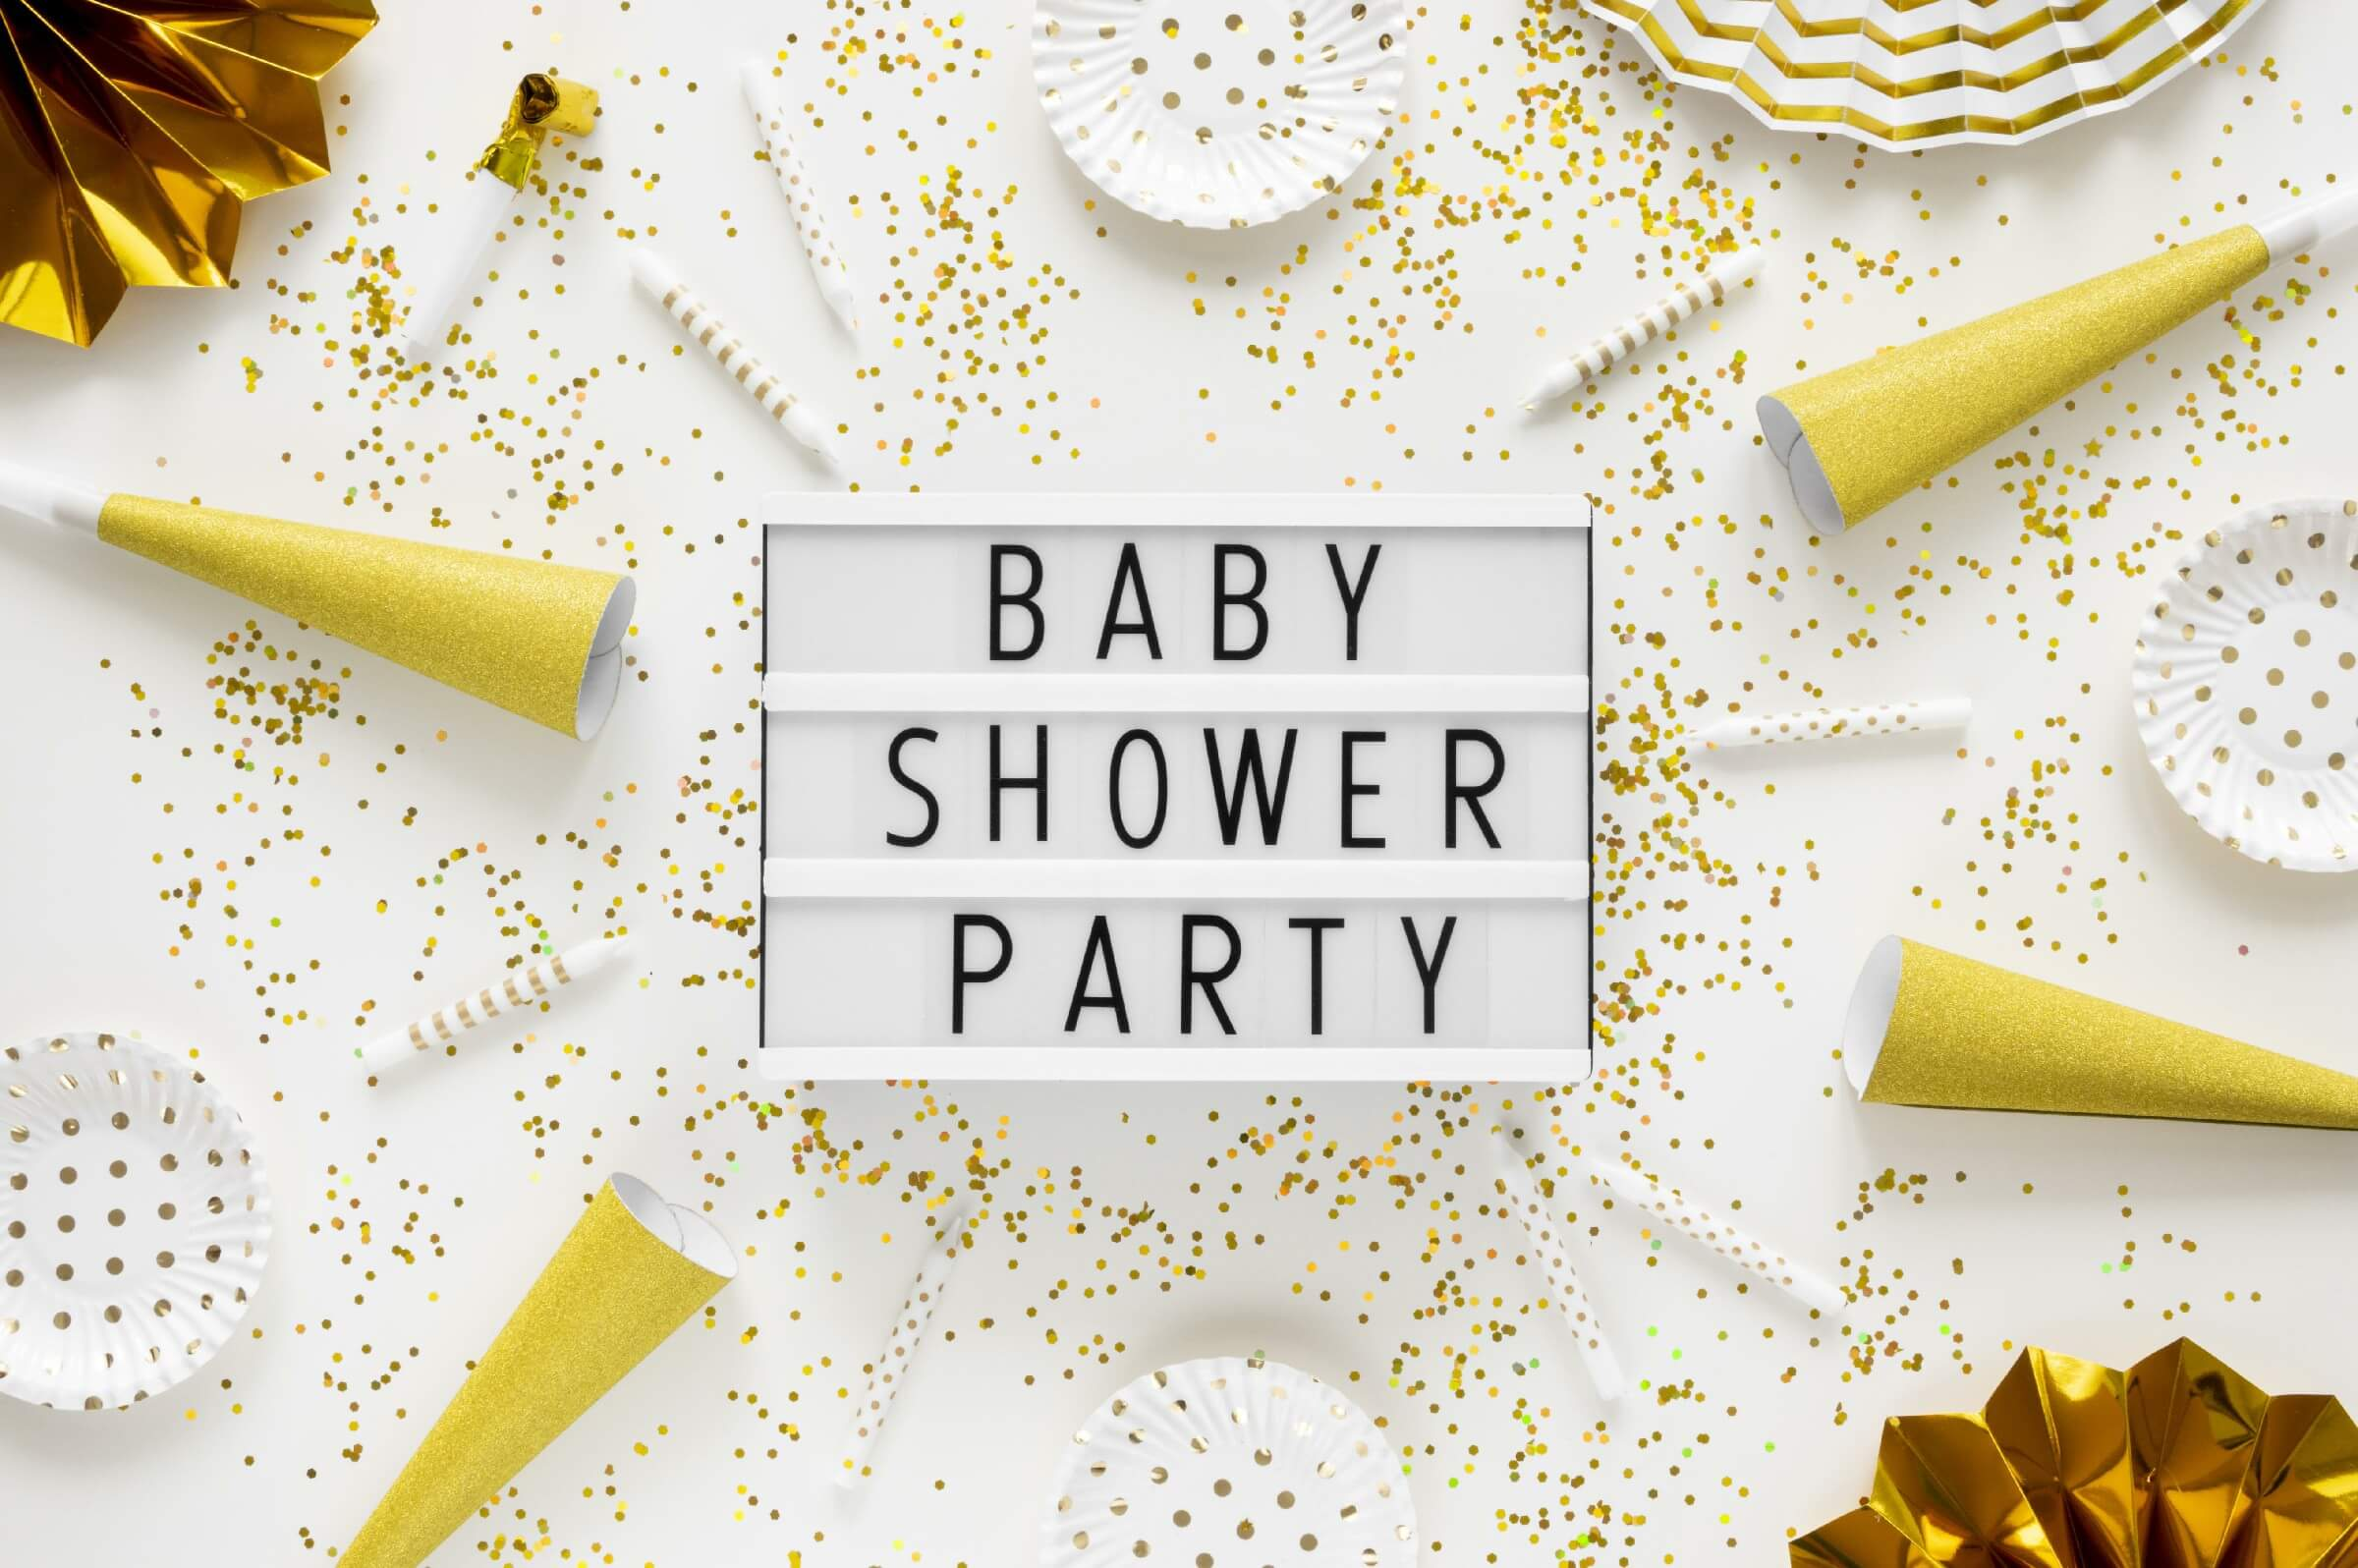 How to Do a Baby Shower Planning Checklist for a Memorable Day